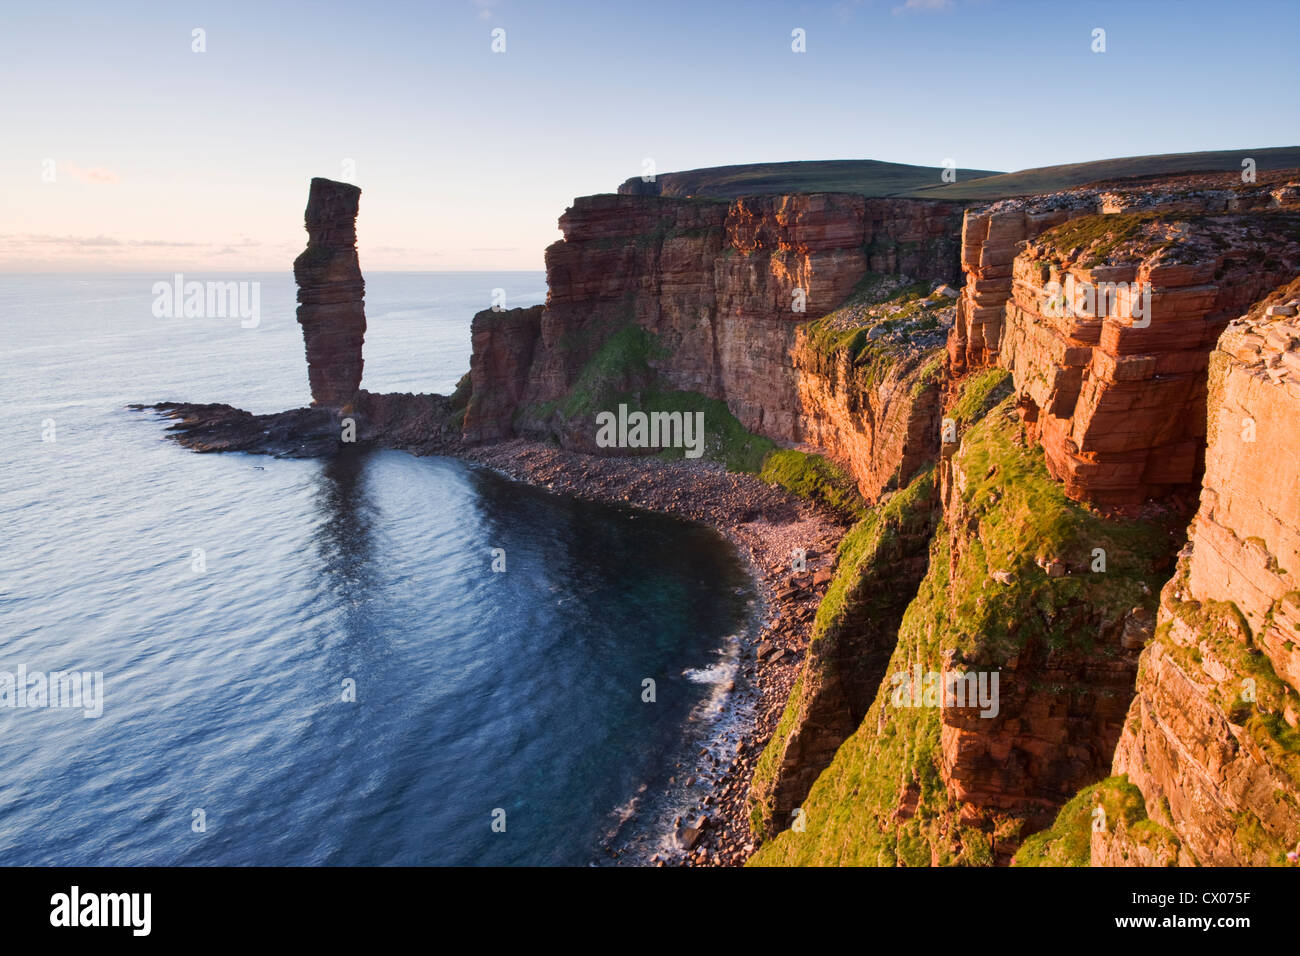 Old Man of Hoy, Hoy, Orkney Islands, Scotland, UK. - Stock Image